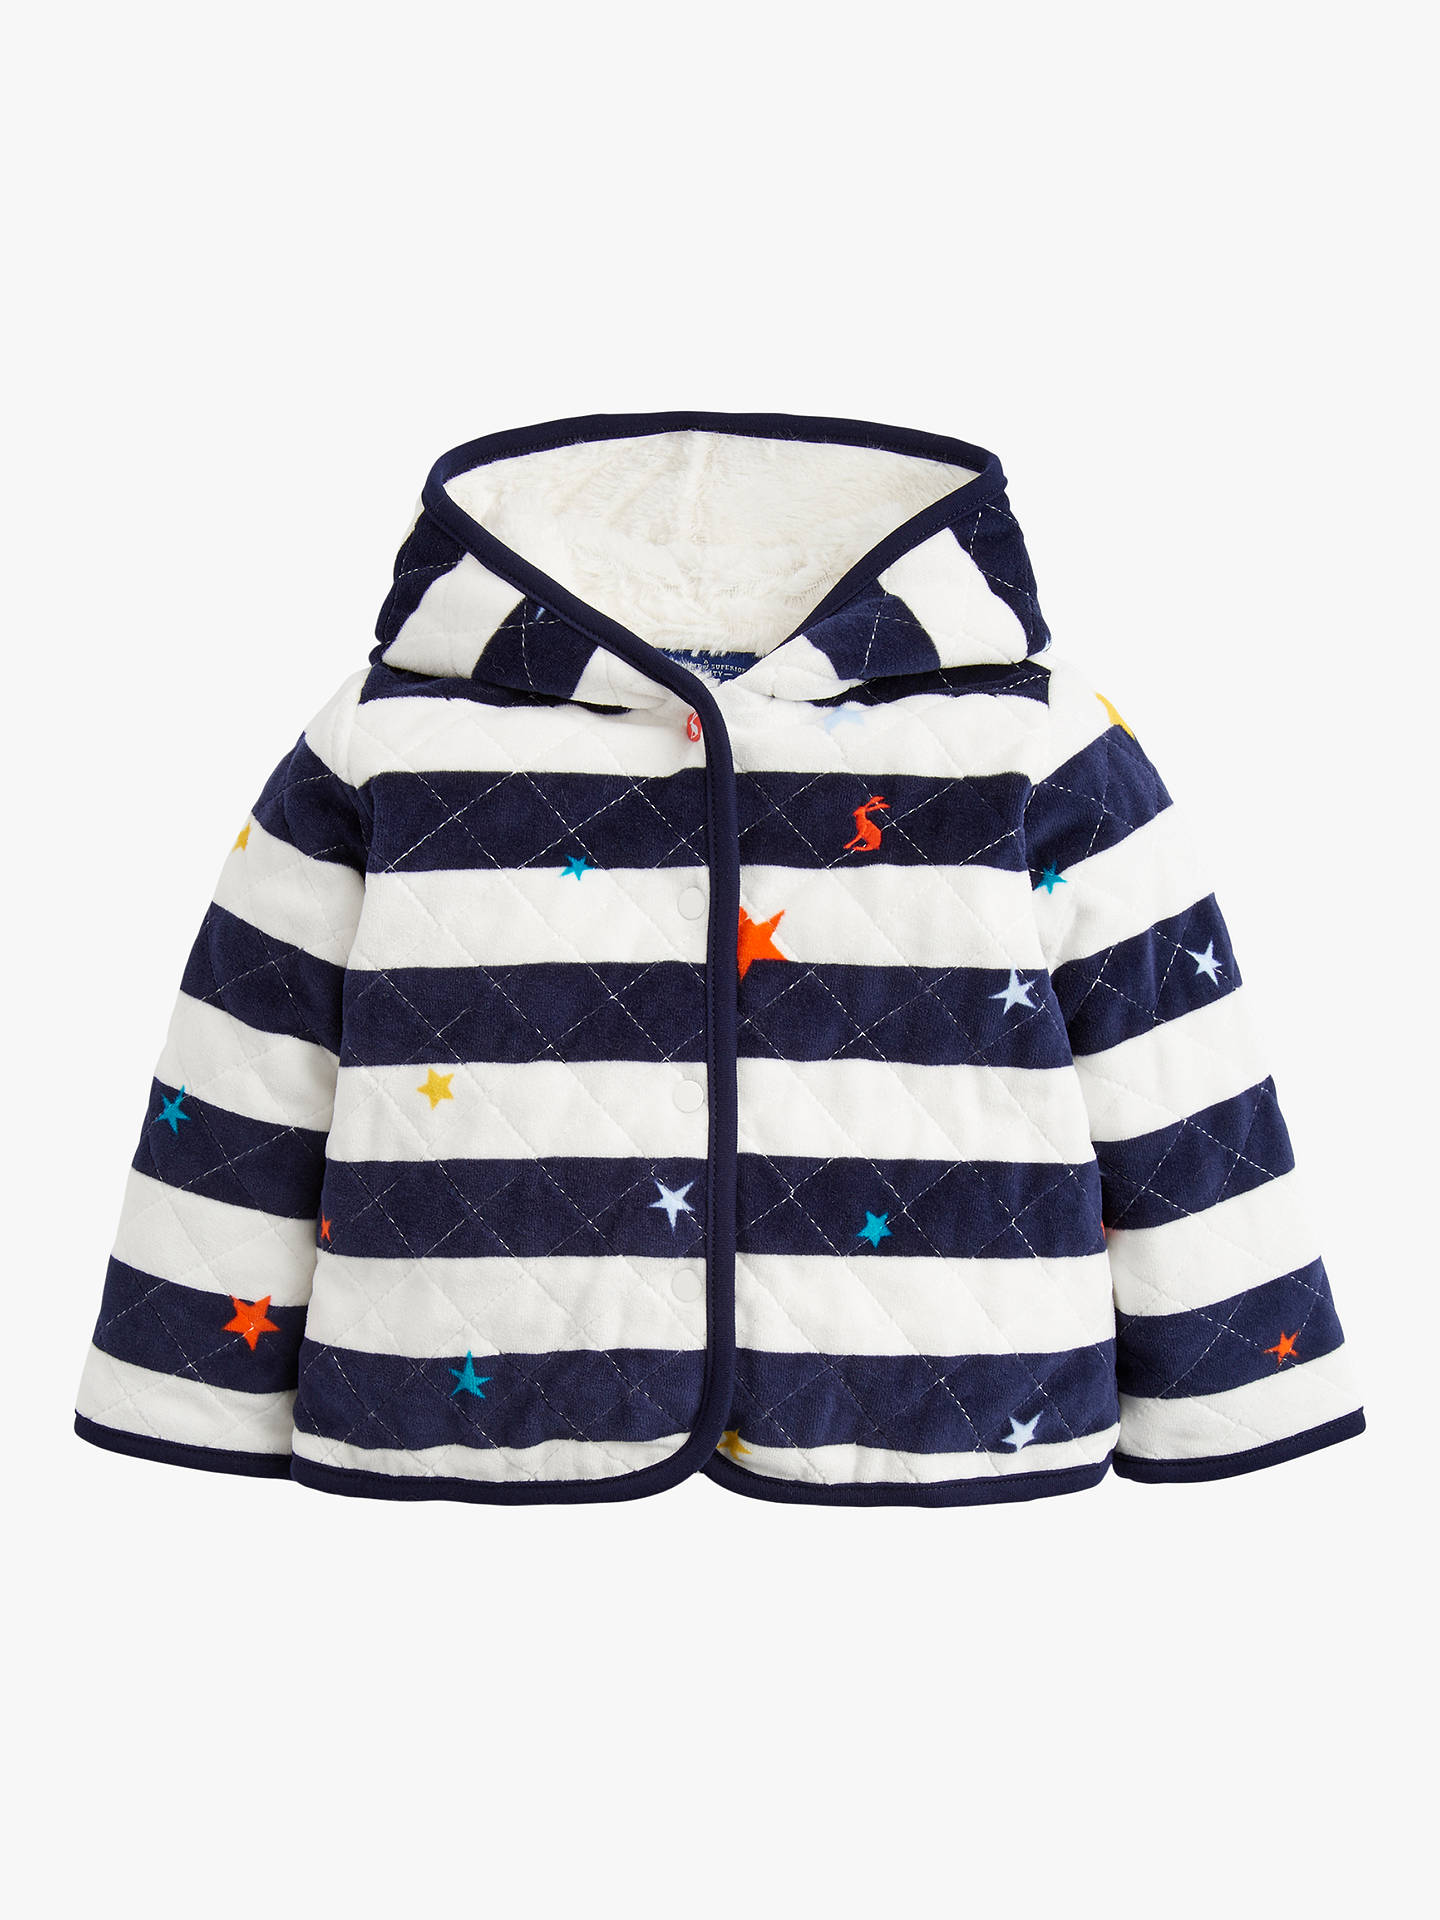 BuyBaby Joule Alex Velour Quilted Jacket, Blue, 0-3 months Online at johnlewis.com